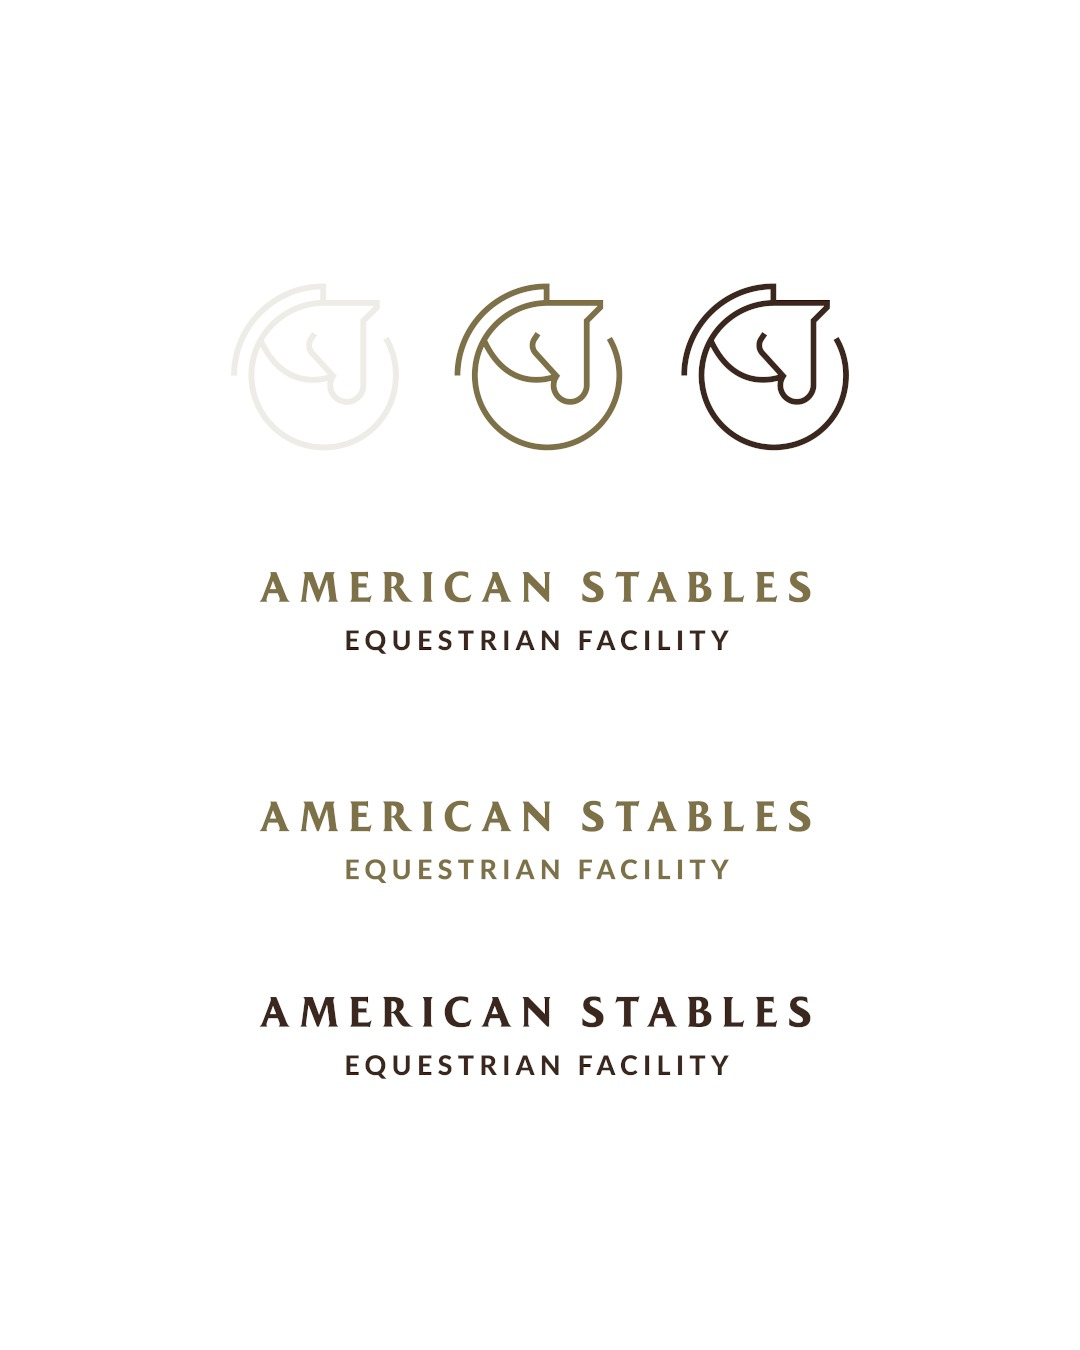 AMERICAN STABLES